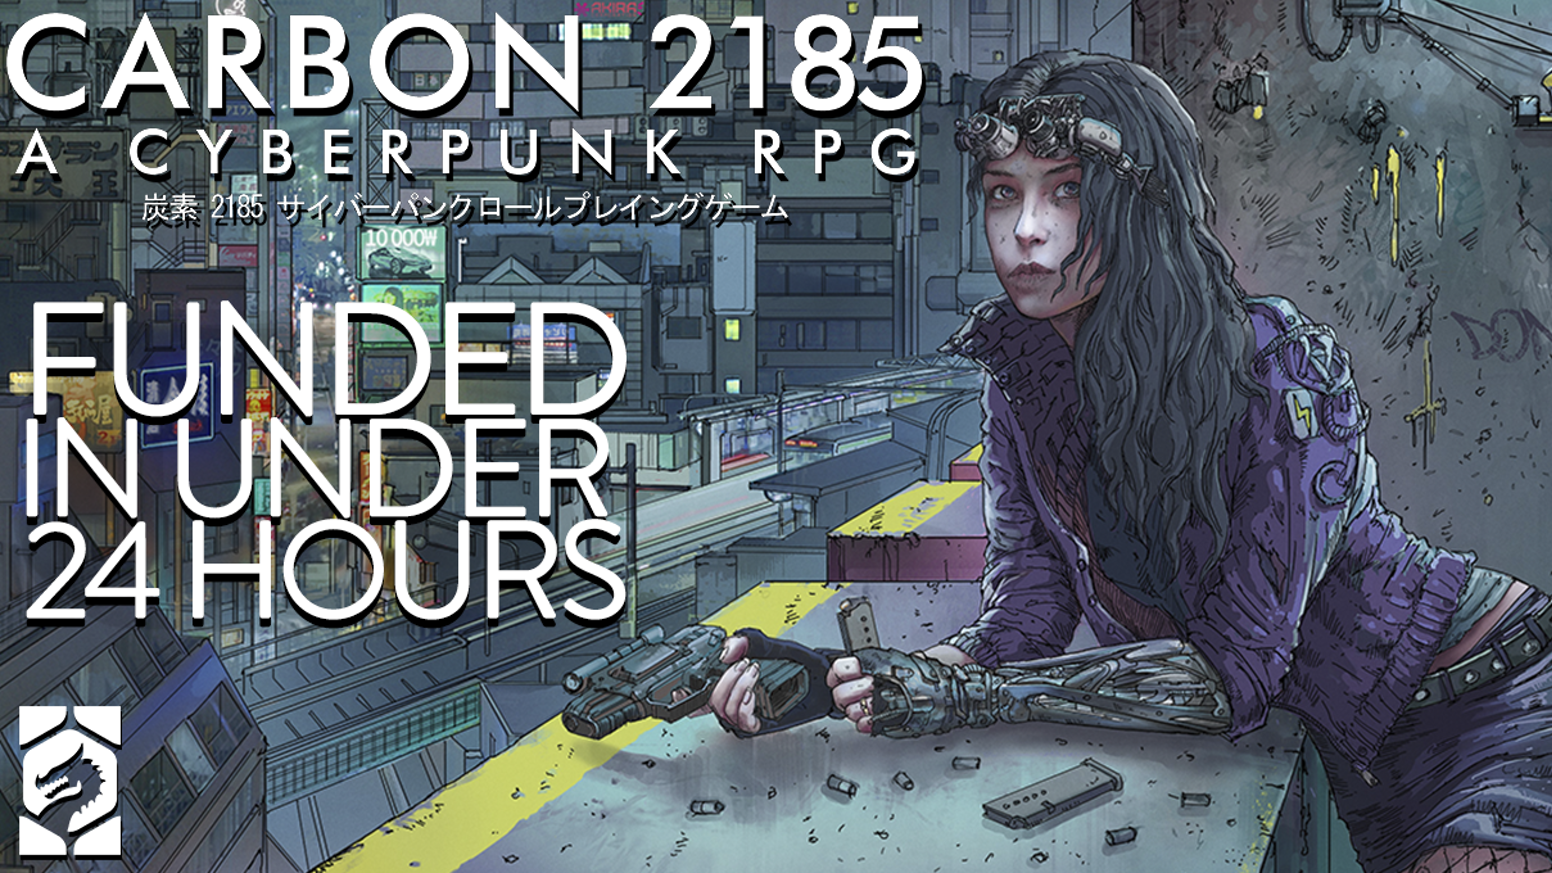 A high action, modern cyberpunk tabletop roleplaying game set in a dystopian San Francisco